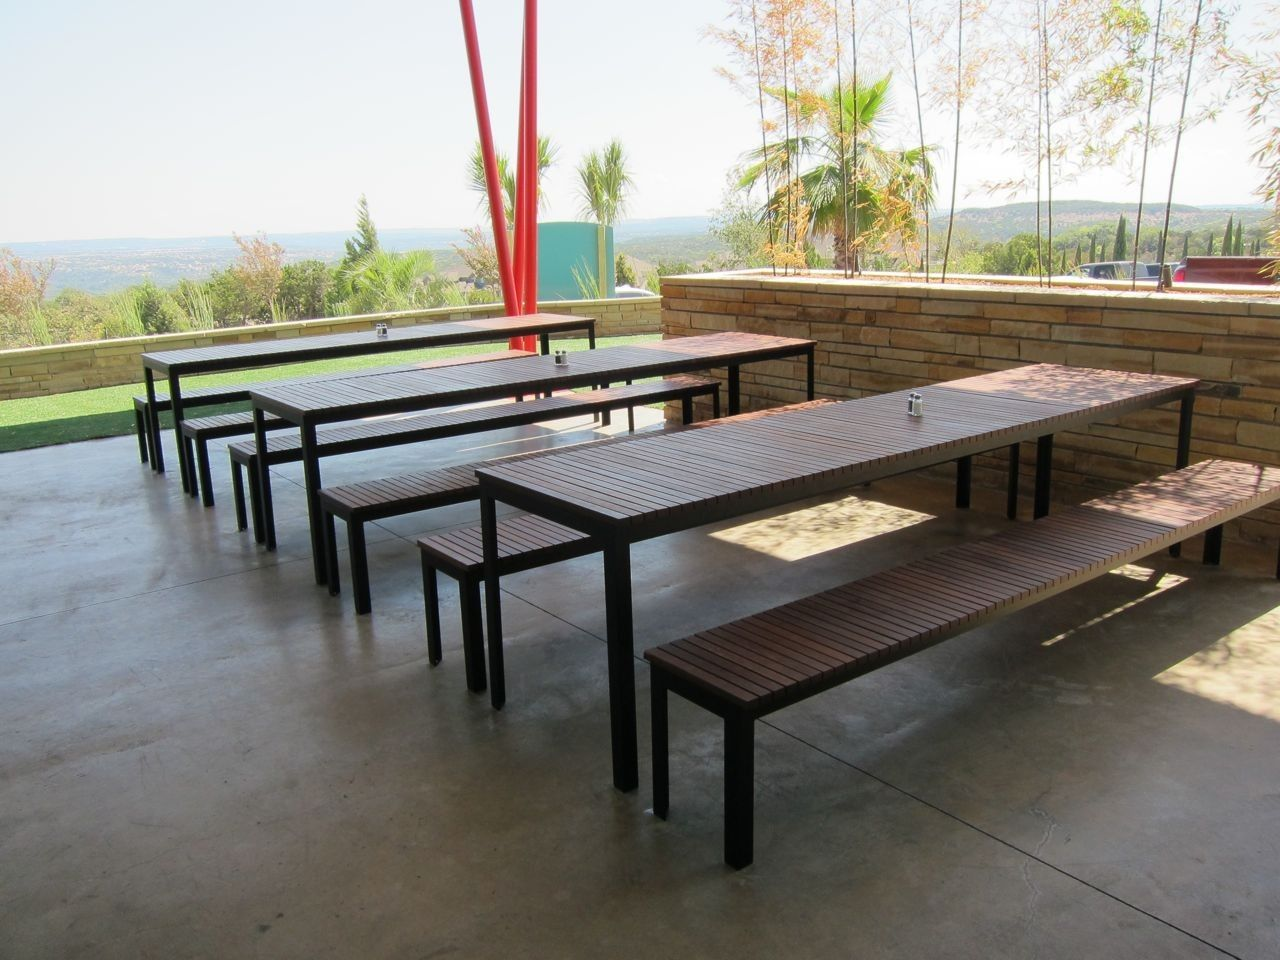 Custom Made Custom Outdoor Furniture   P Terry s Austin  TxHand Crafted Custom Outdoor Furniture   P Terry s Austin  Tx by  . Outdoor Dining Sets Austin. Home Design Ideas